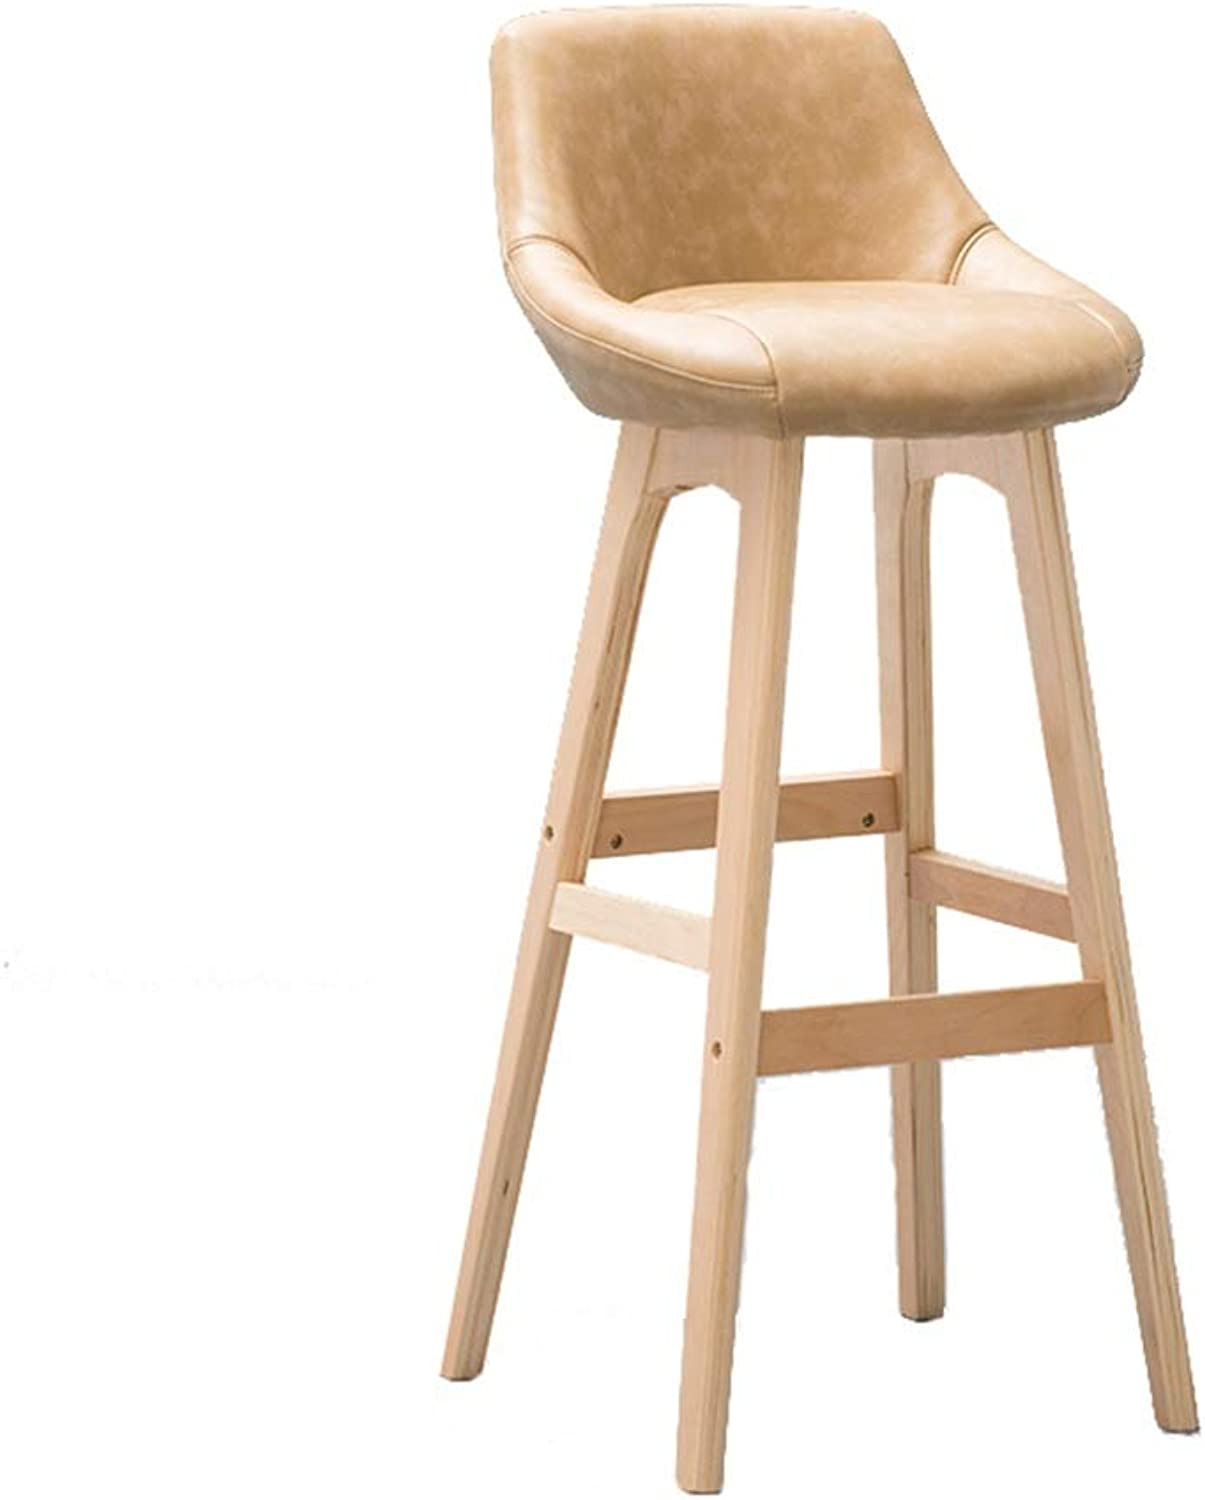 Wooden Barstool High Stool Breakfast Dining Stool for Kitchen Home Bar Counter Commercial Chair with Backrest and Beige PU Cushion Concise Style - Height 79.5cm